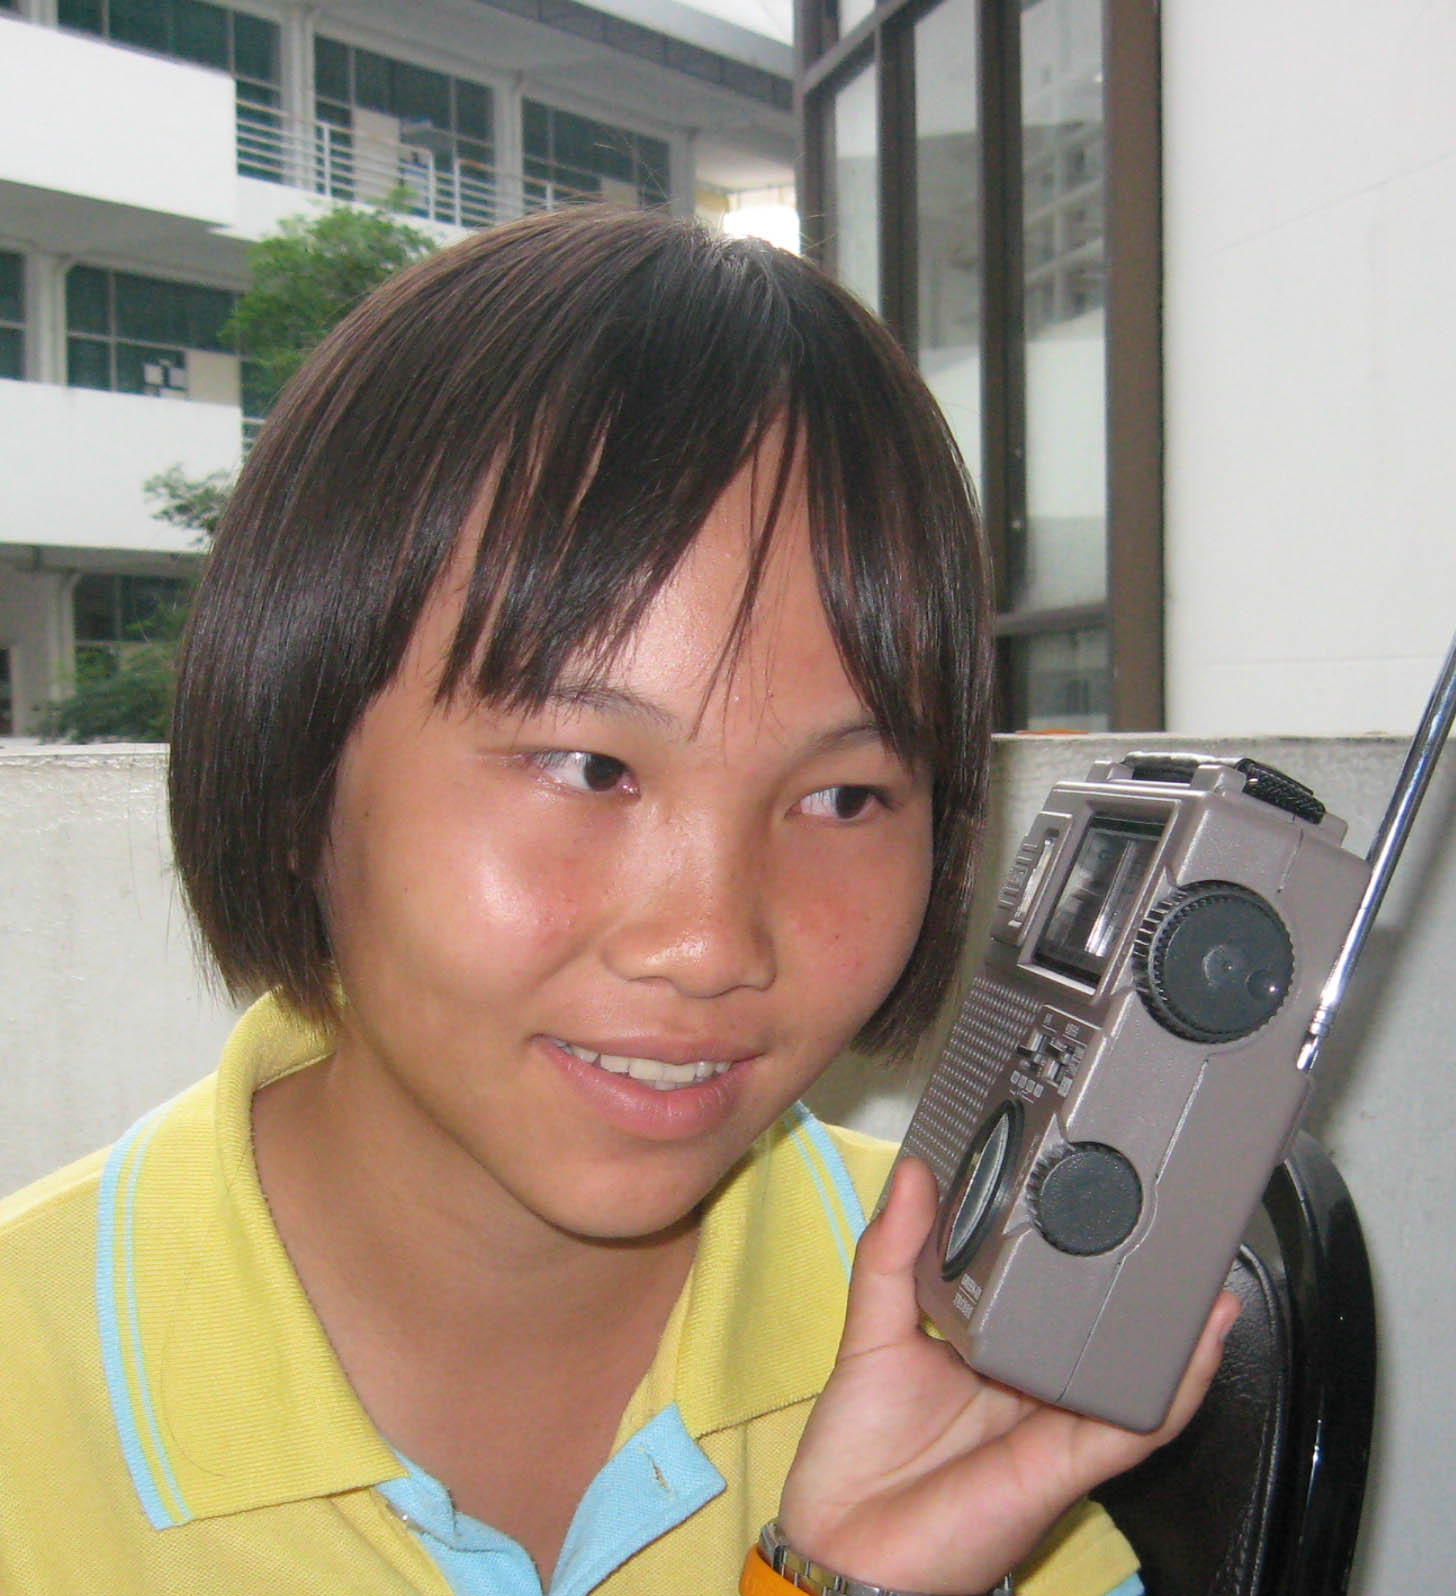 In Thailand, A Listener Writes to Express Their Transformation in Christ